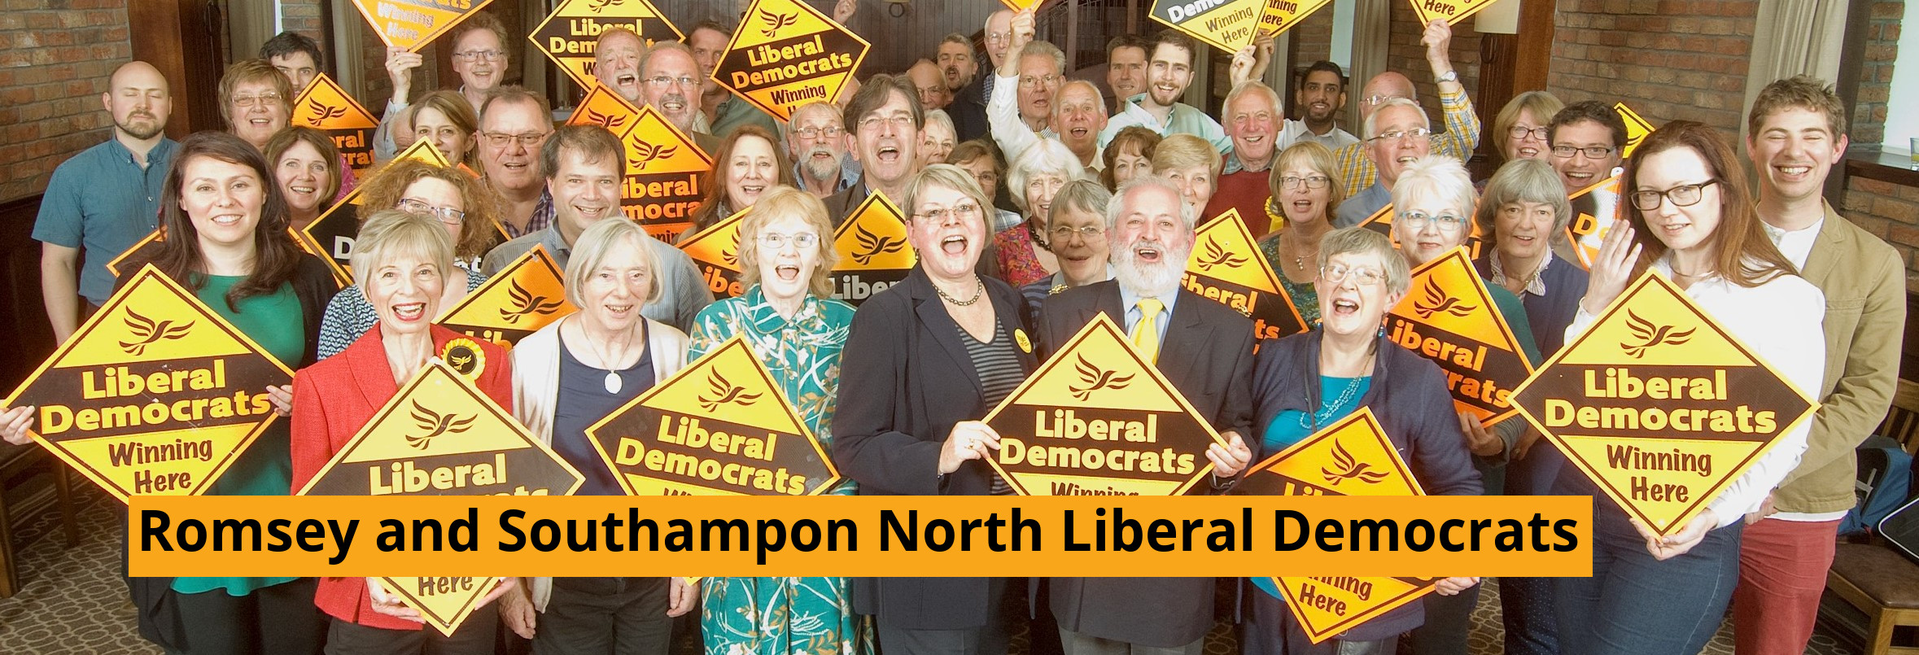 Romsey and Southampton North Lib Dems